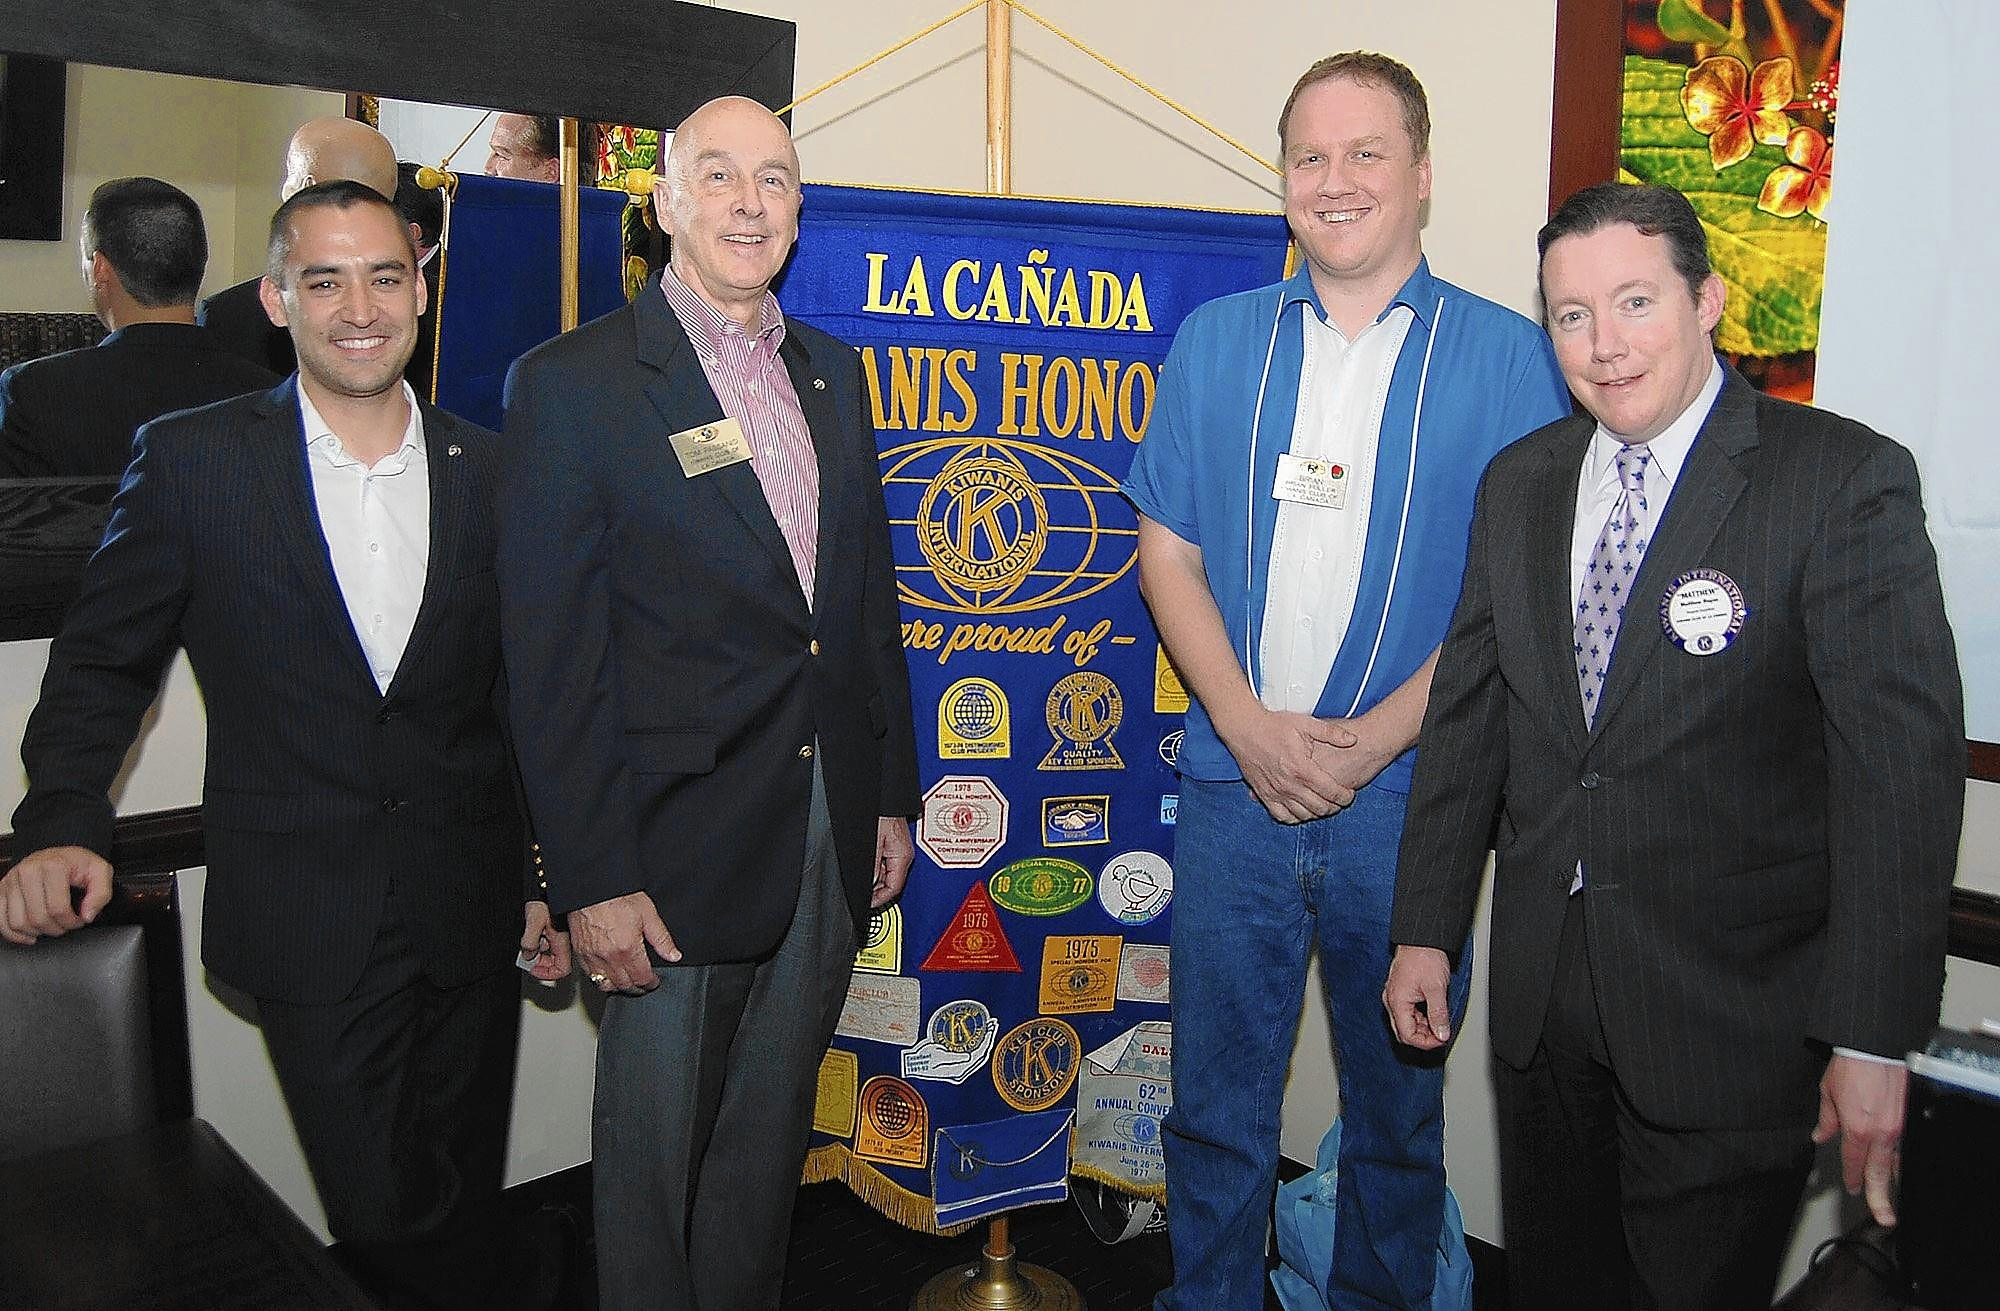 Kiwanis Club organizers of the new local branch of the Noon Club include Kyle Hara, from left, club President Tom Passanisi, Brian Fuller and Matt Regan.